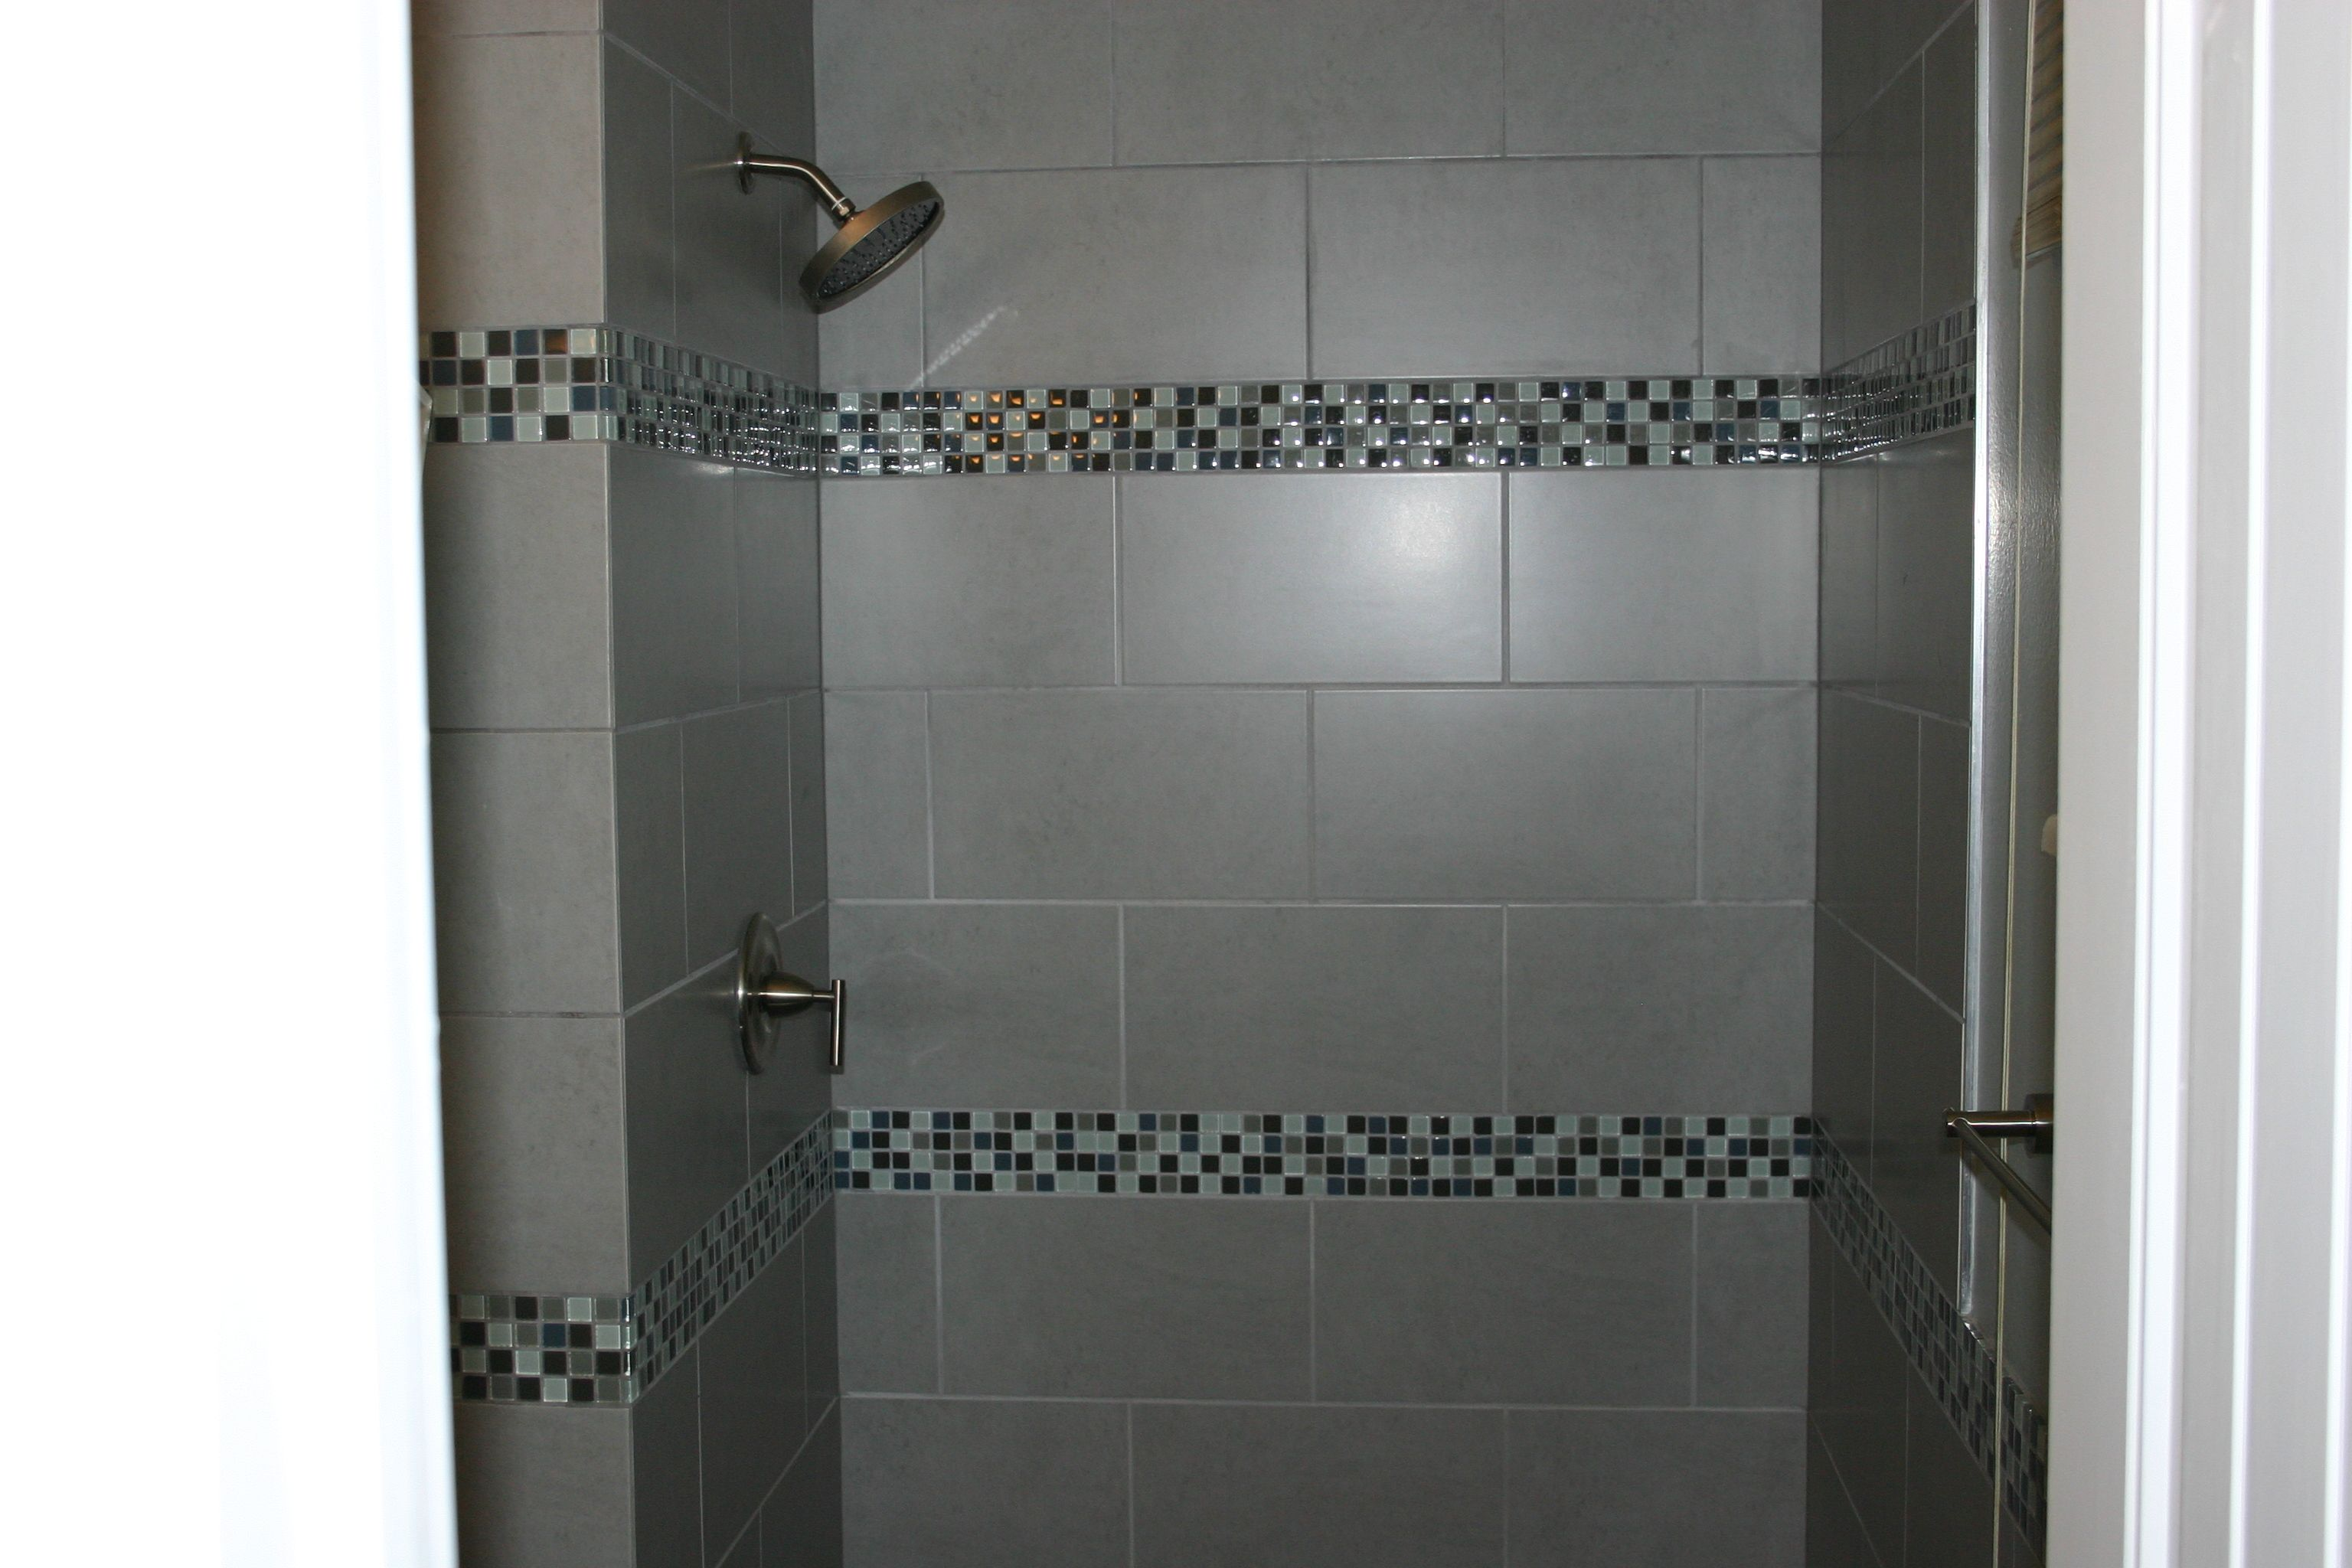 tiled shower designs | bathroom tile designs, ideas & pictures